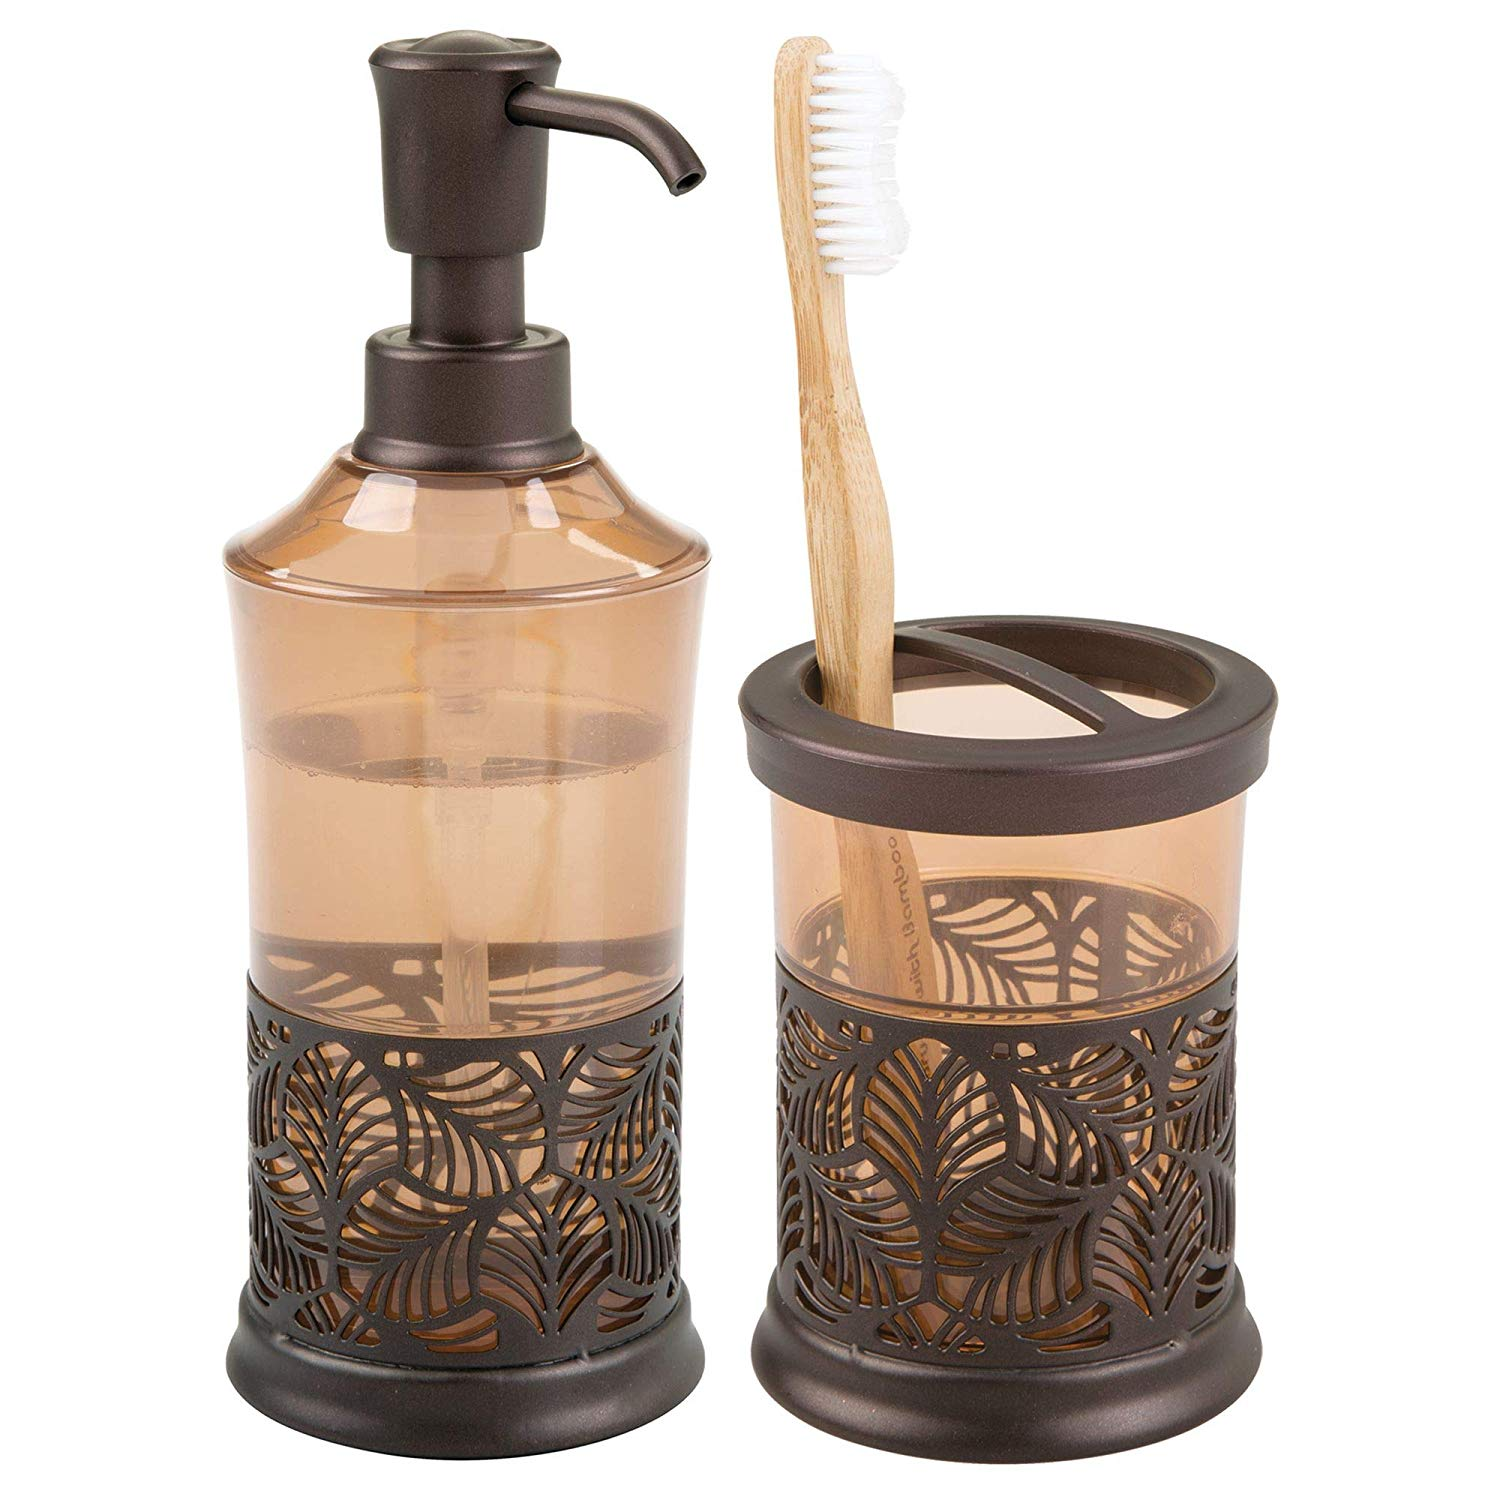 mDesign Decorative Bath Accessory Set with Leaf Design for Bathroom Vanity Countertops and Sinks, Includes Hand Soap Dispenser and Toothbrush Holder - Set of 2, Sand/Bronze